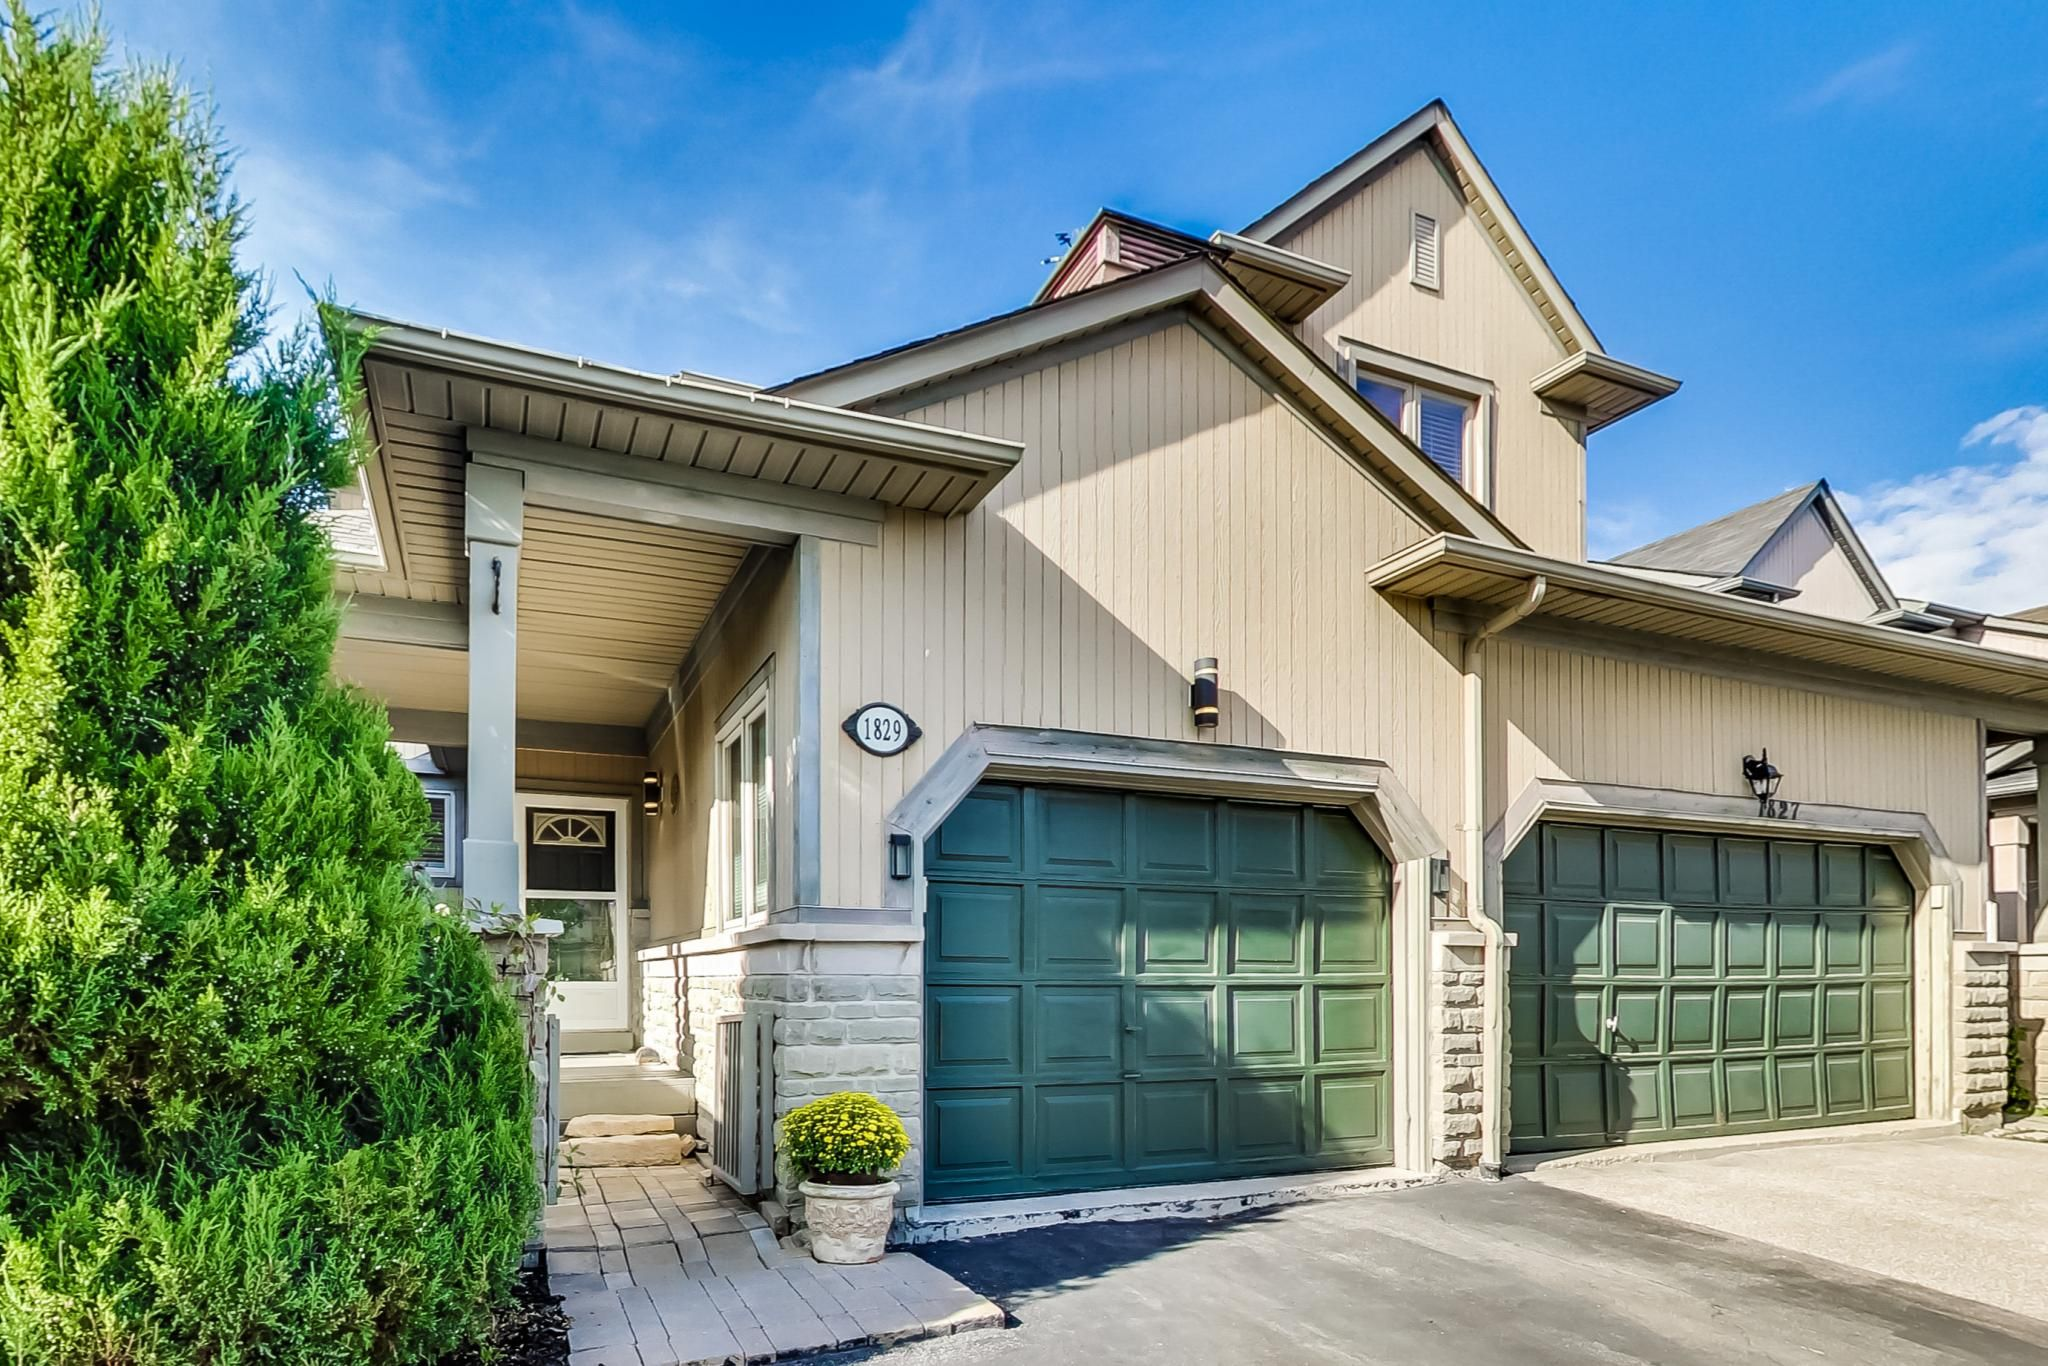 Main Photo: 1829 Stevington Crescent in Mississauga: Meadowvale Village House (2-Storey) for sale : MLS®# W5379274